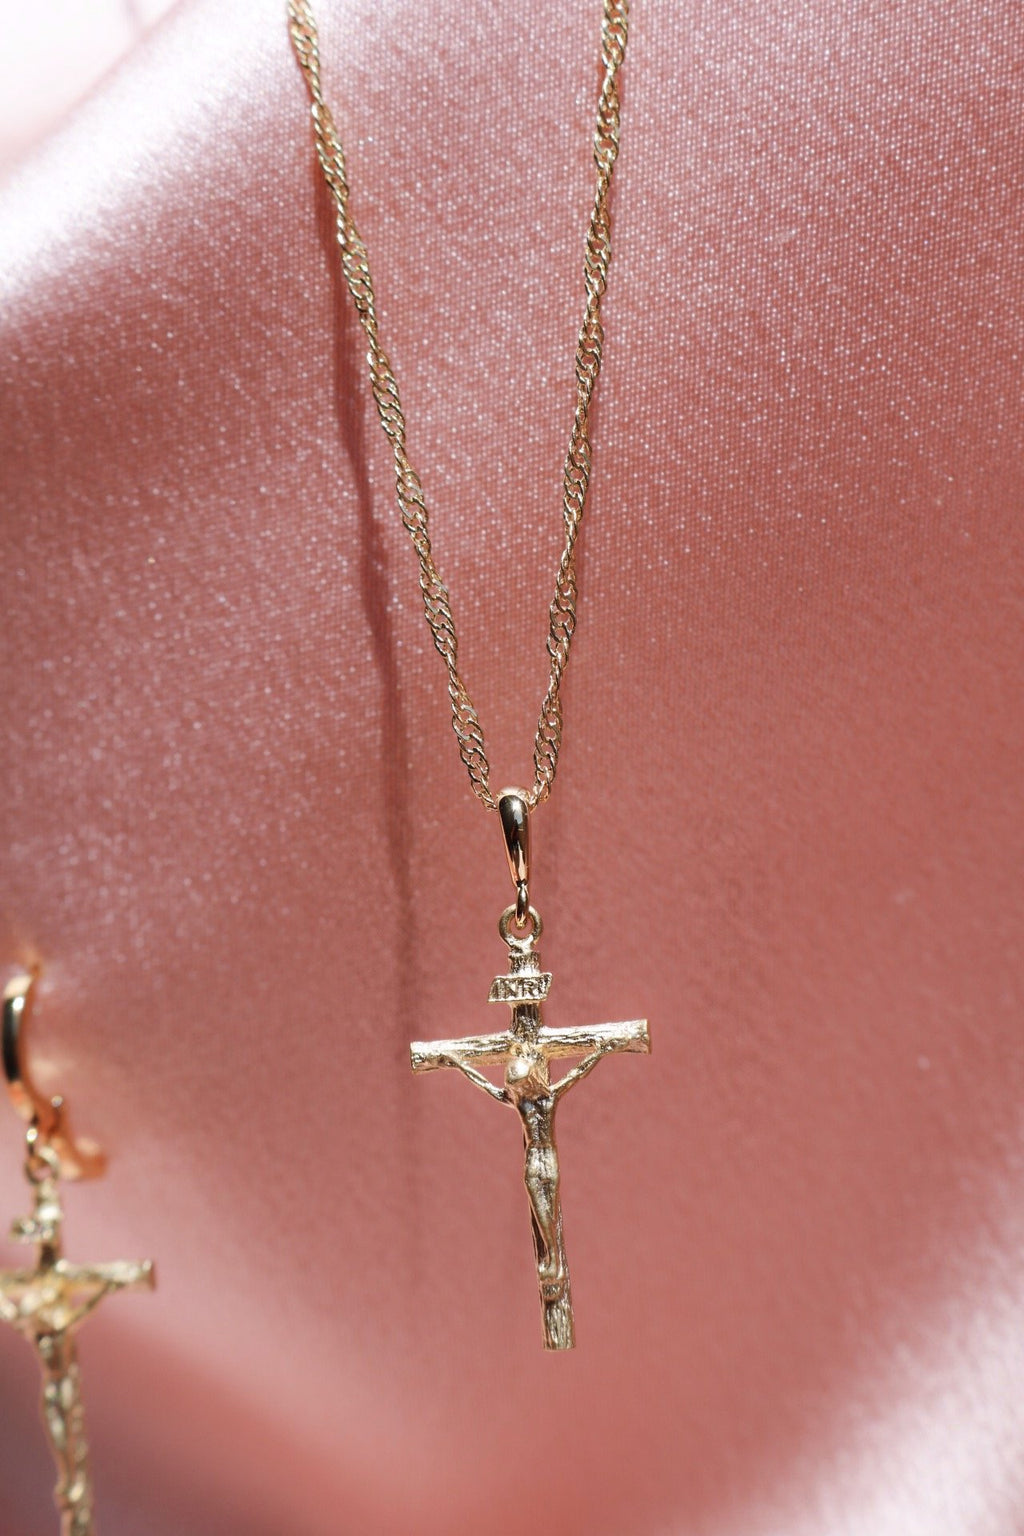 Gold Chain and Cross Pendant